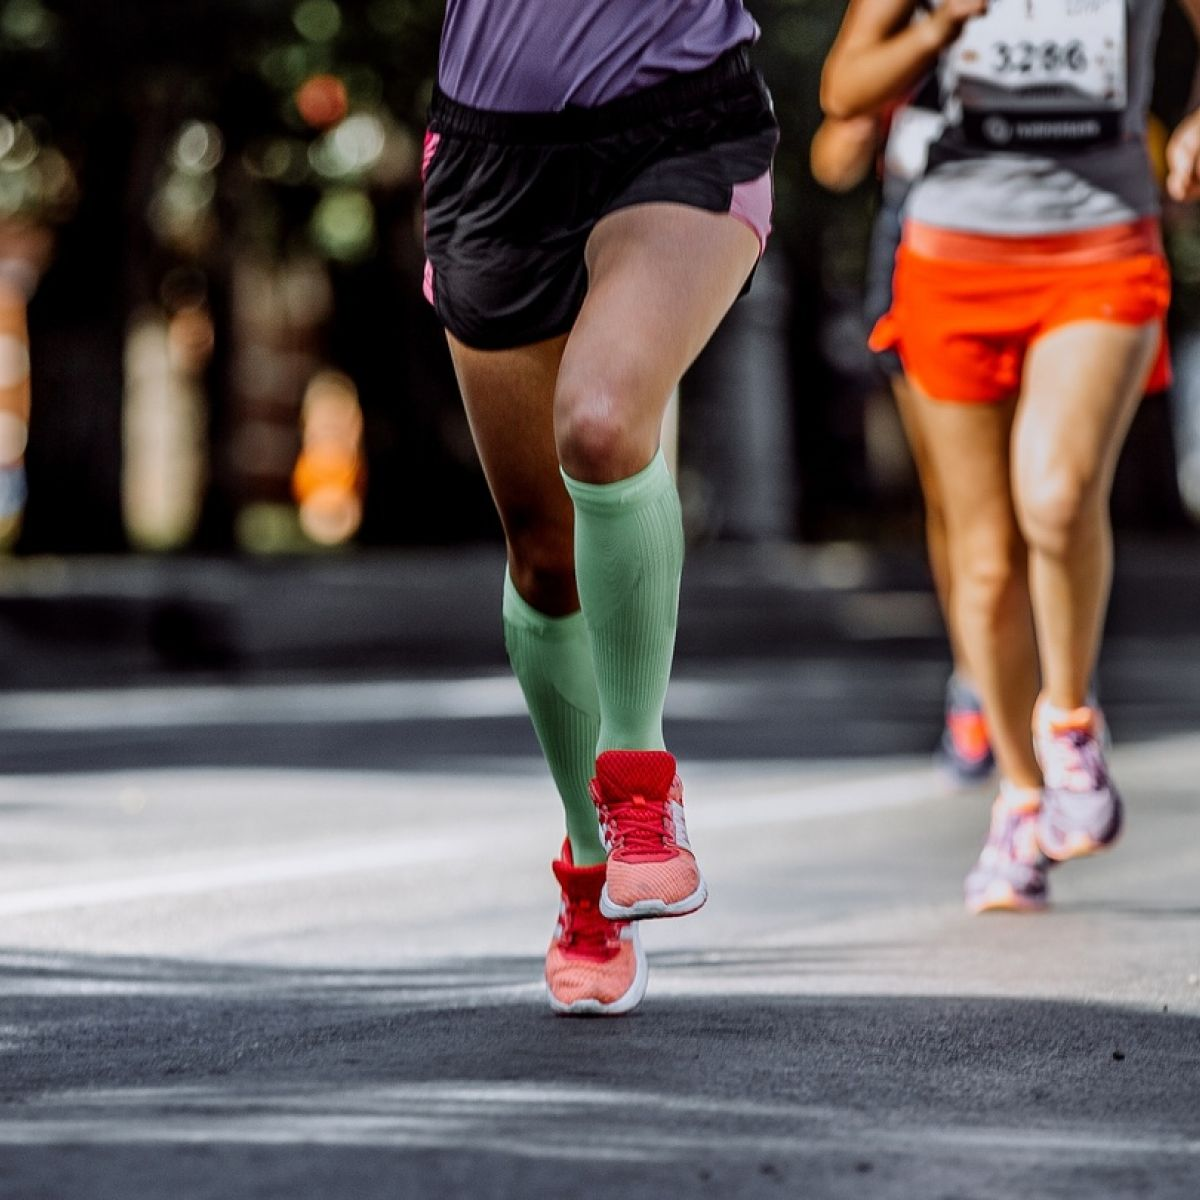 Why socks could be key for marathon runners